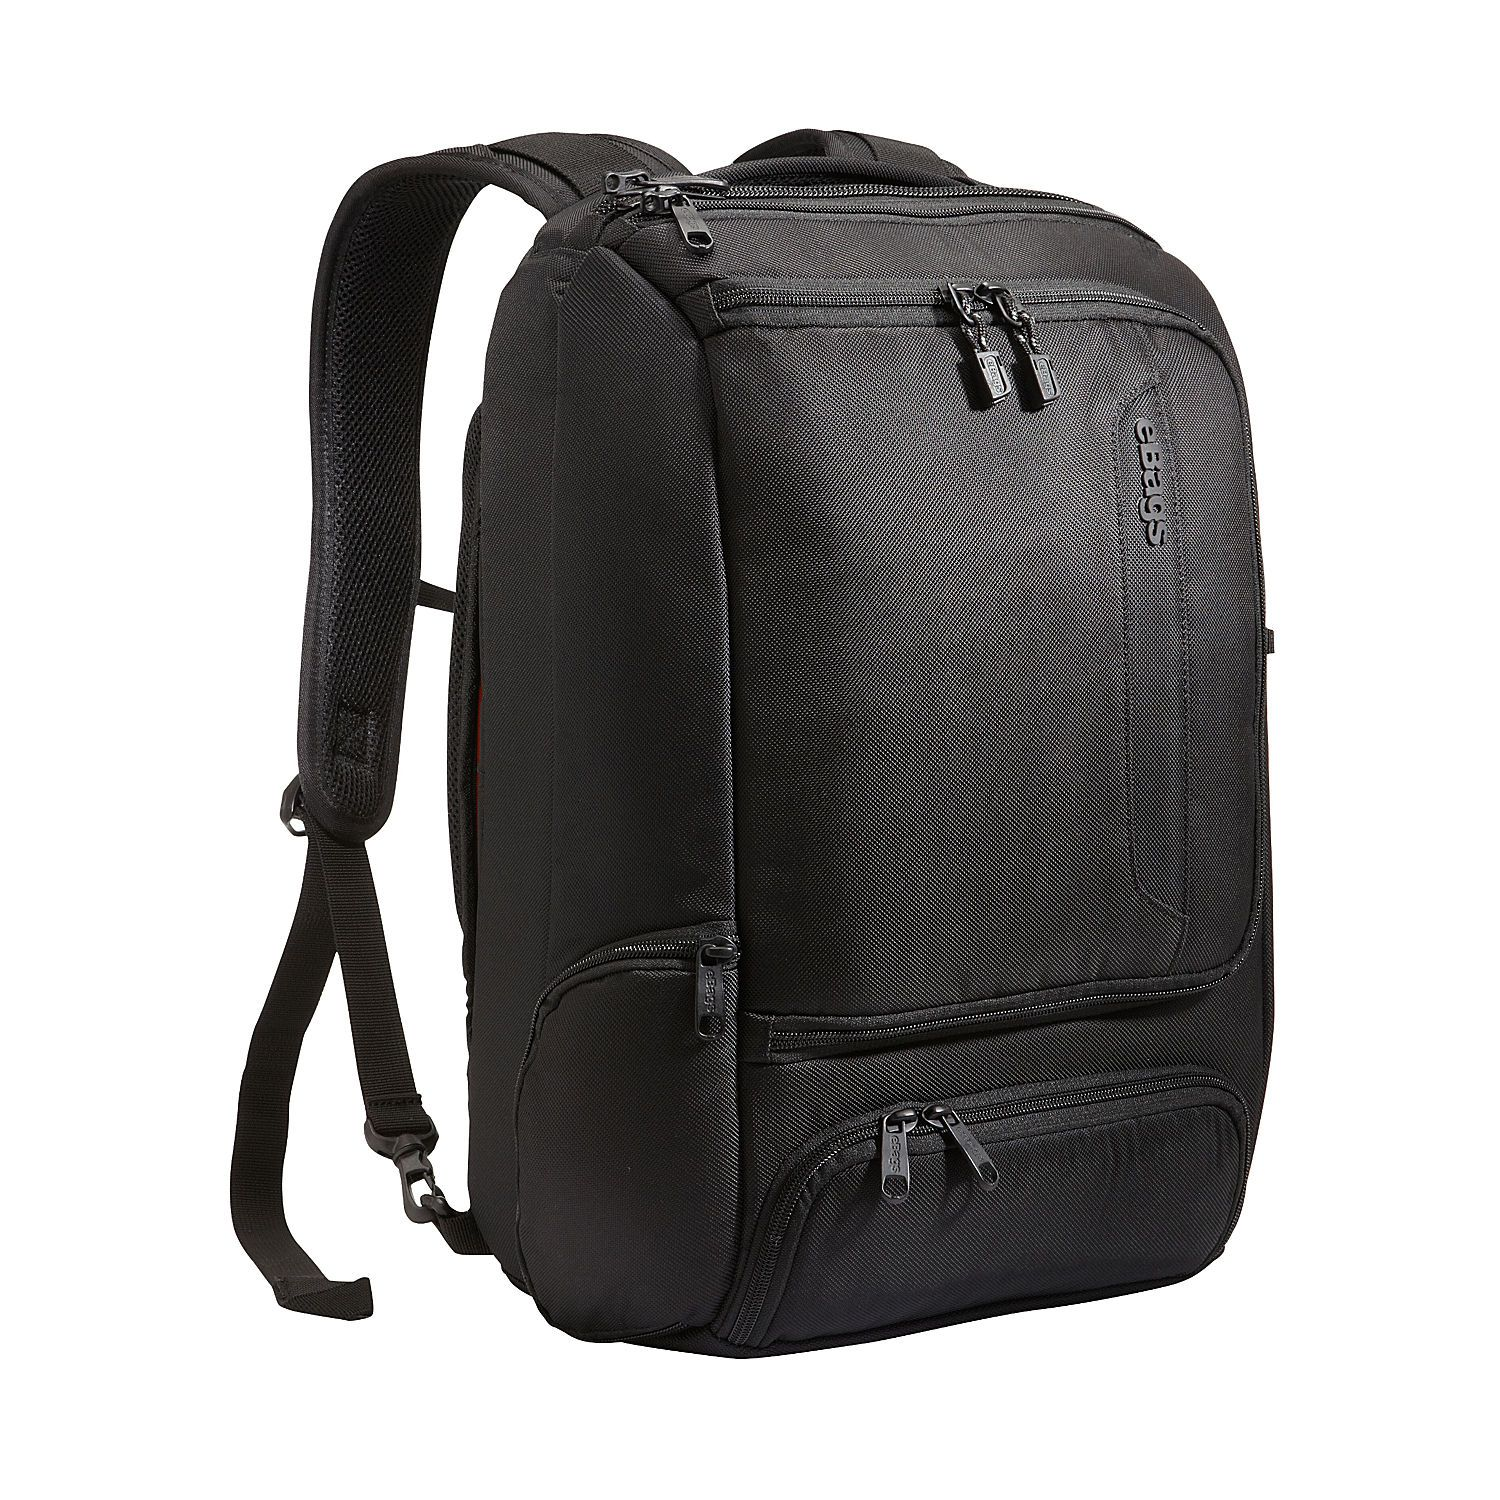 Professional Slim Laptop Backpack | Laptop backpack